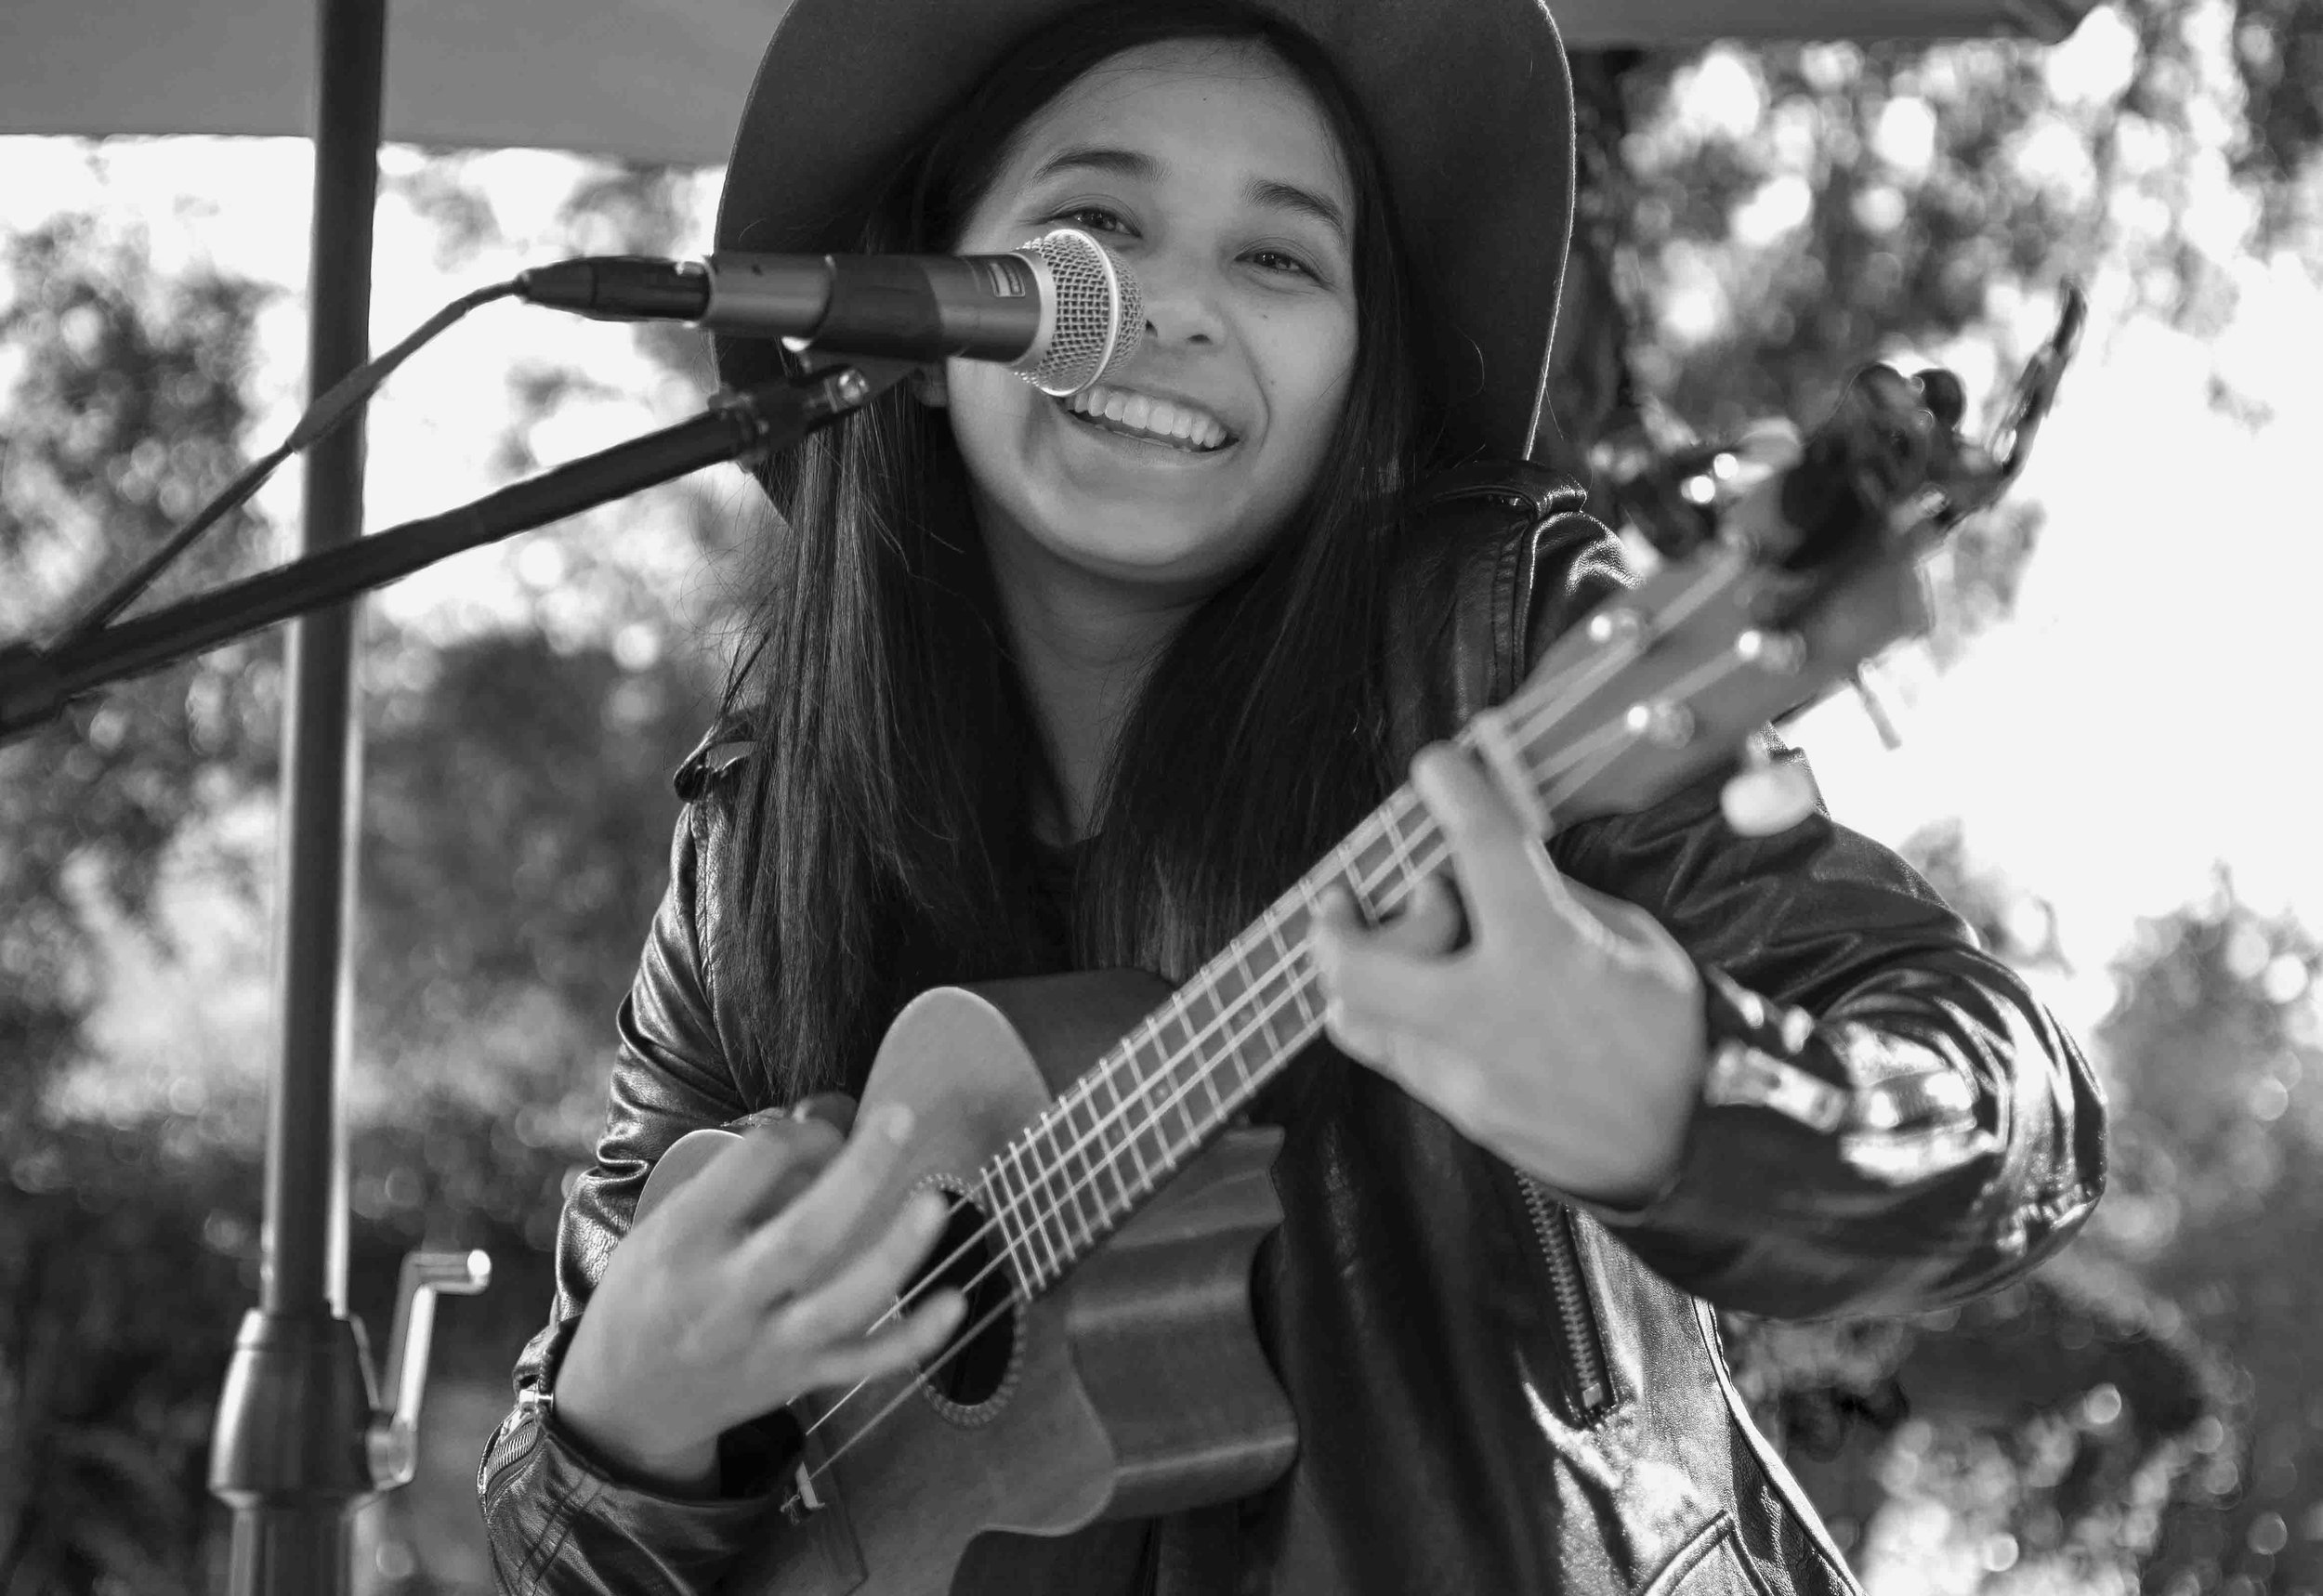 Lois Zozobrado at The Farm at South Mountain Low Res BW.jpg